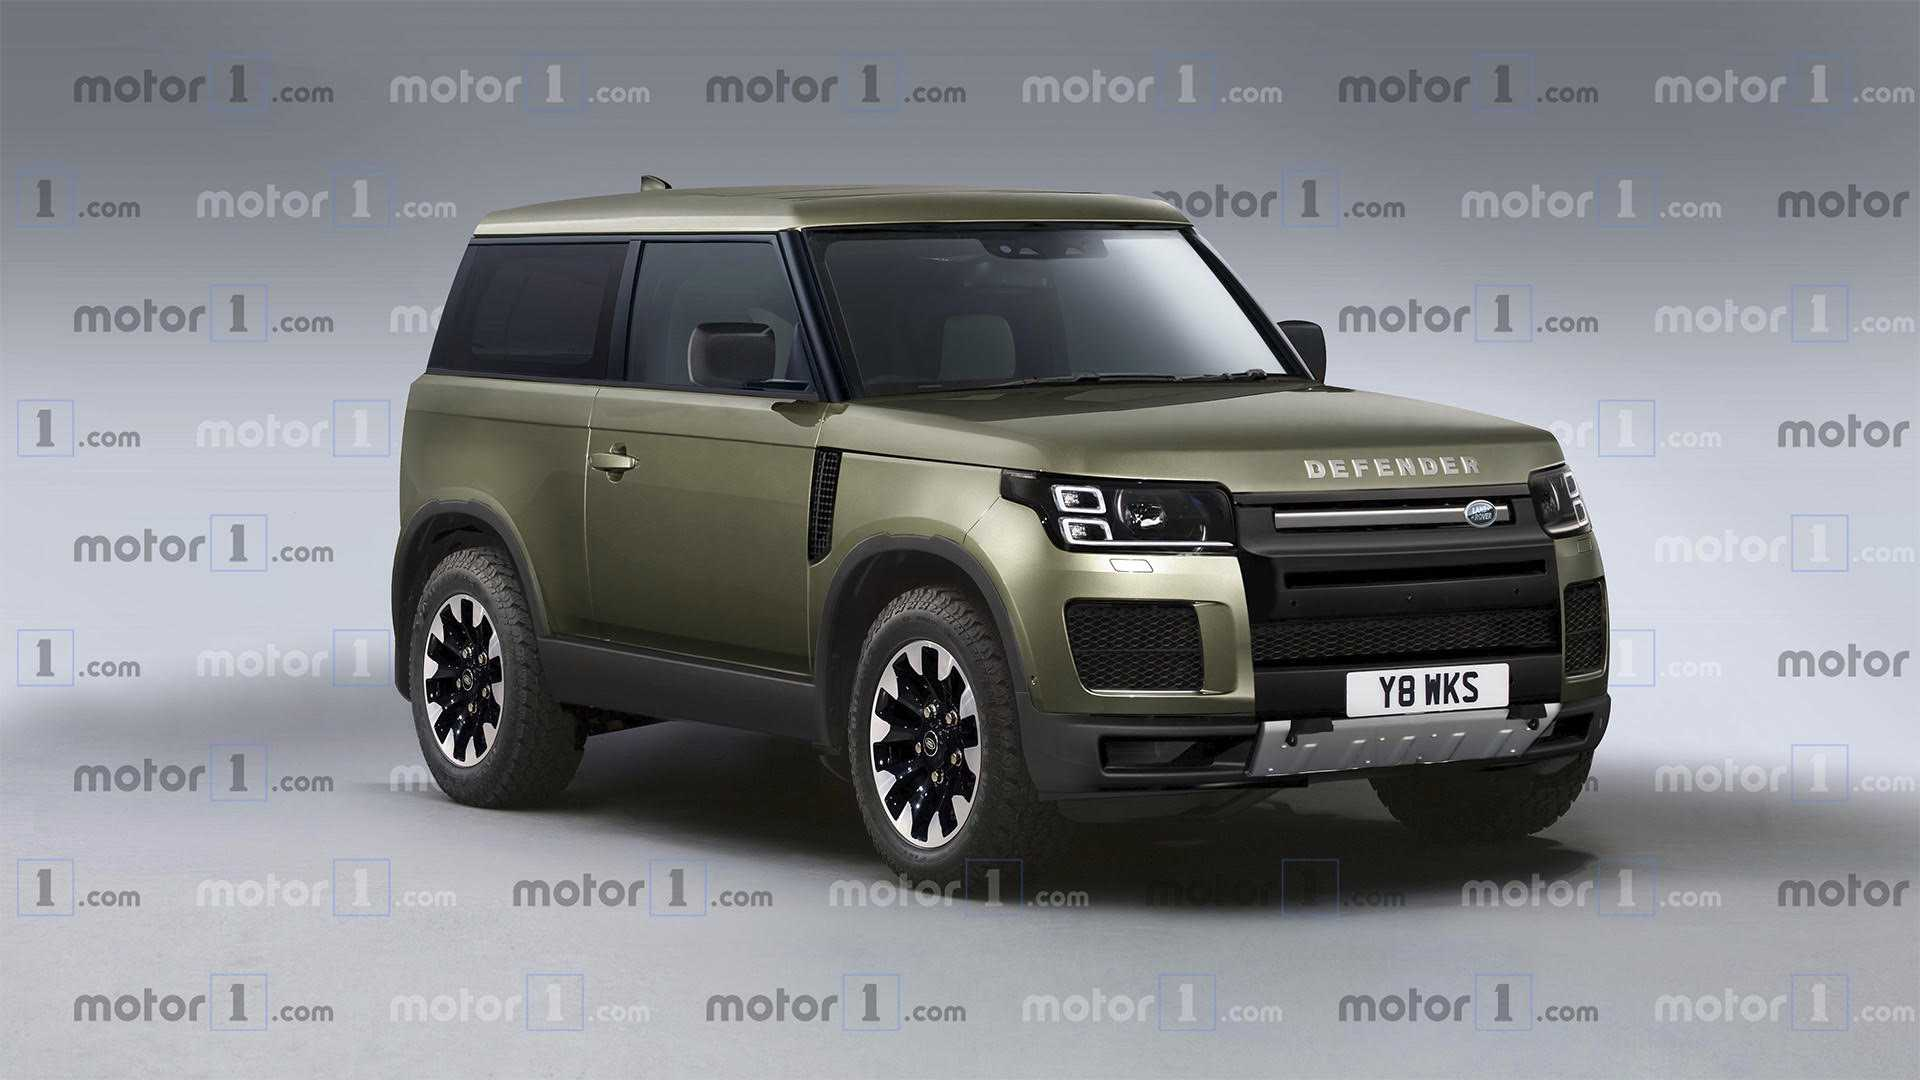 21 All New Jaguar Land Rover Defender 2020 Configurations